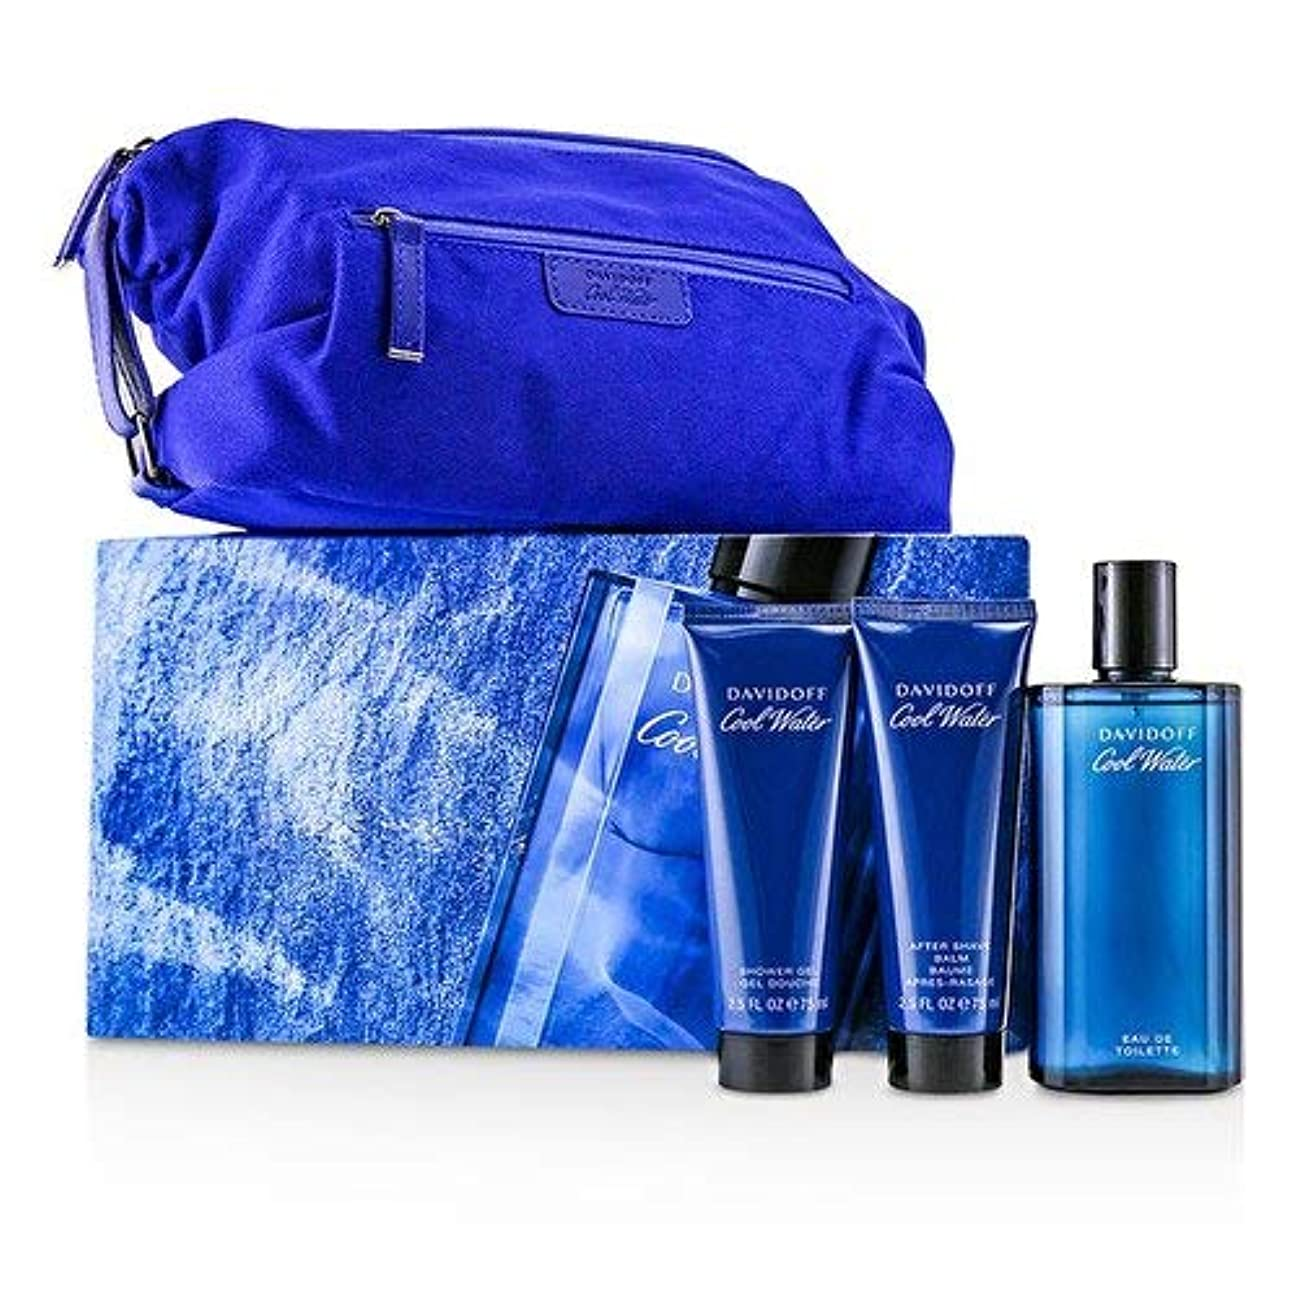 怠けたジャベスウィルソン暴力ダビドフ Coolwater Coffret: Eau De Toilette Spray 125ml/4.2oz + After Shave Balm 75ml/2.5oz + Shower Gel 75ml/2.5oz + Navy Toilet Bag 3pcs+Bag並行輸入品